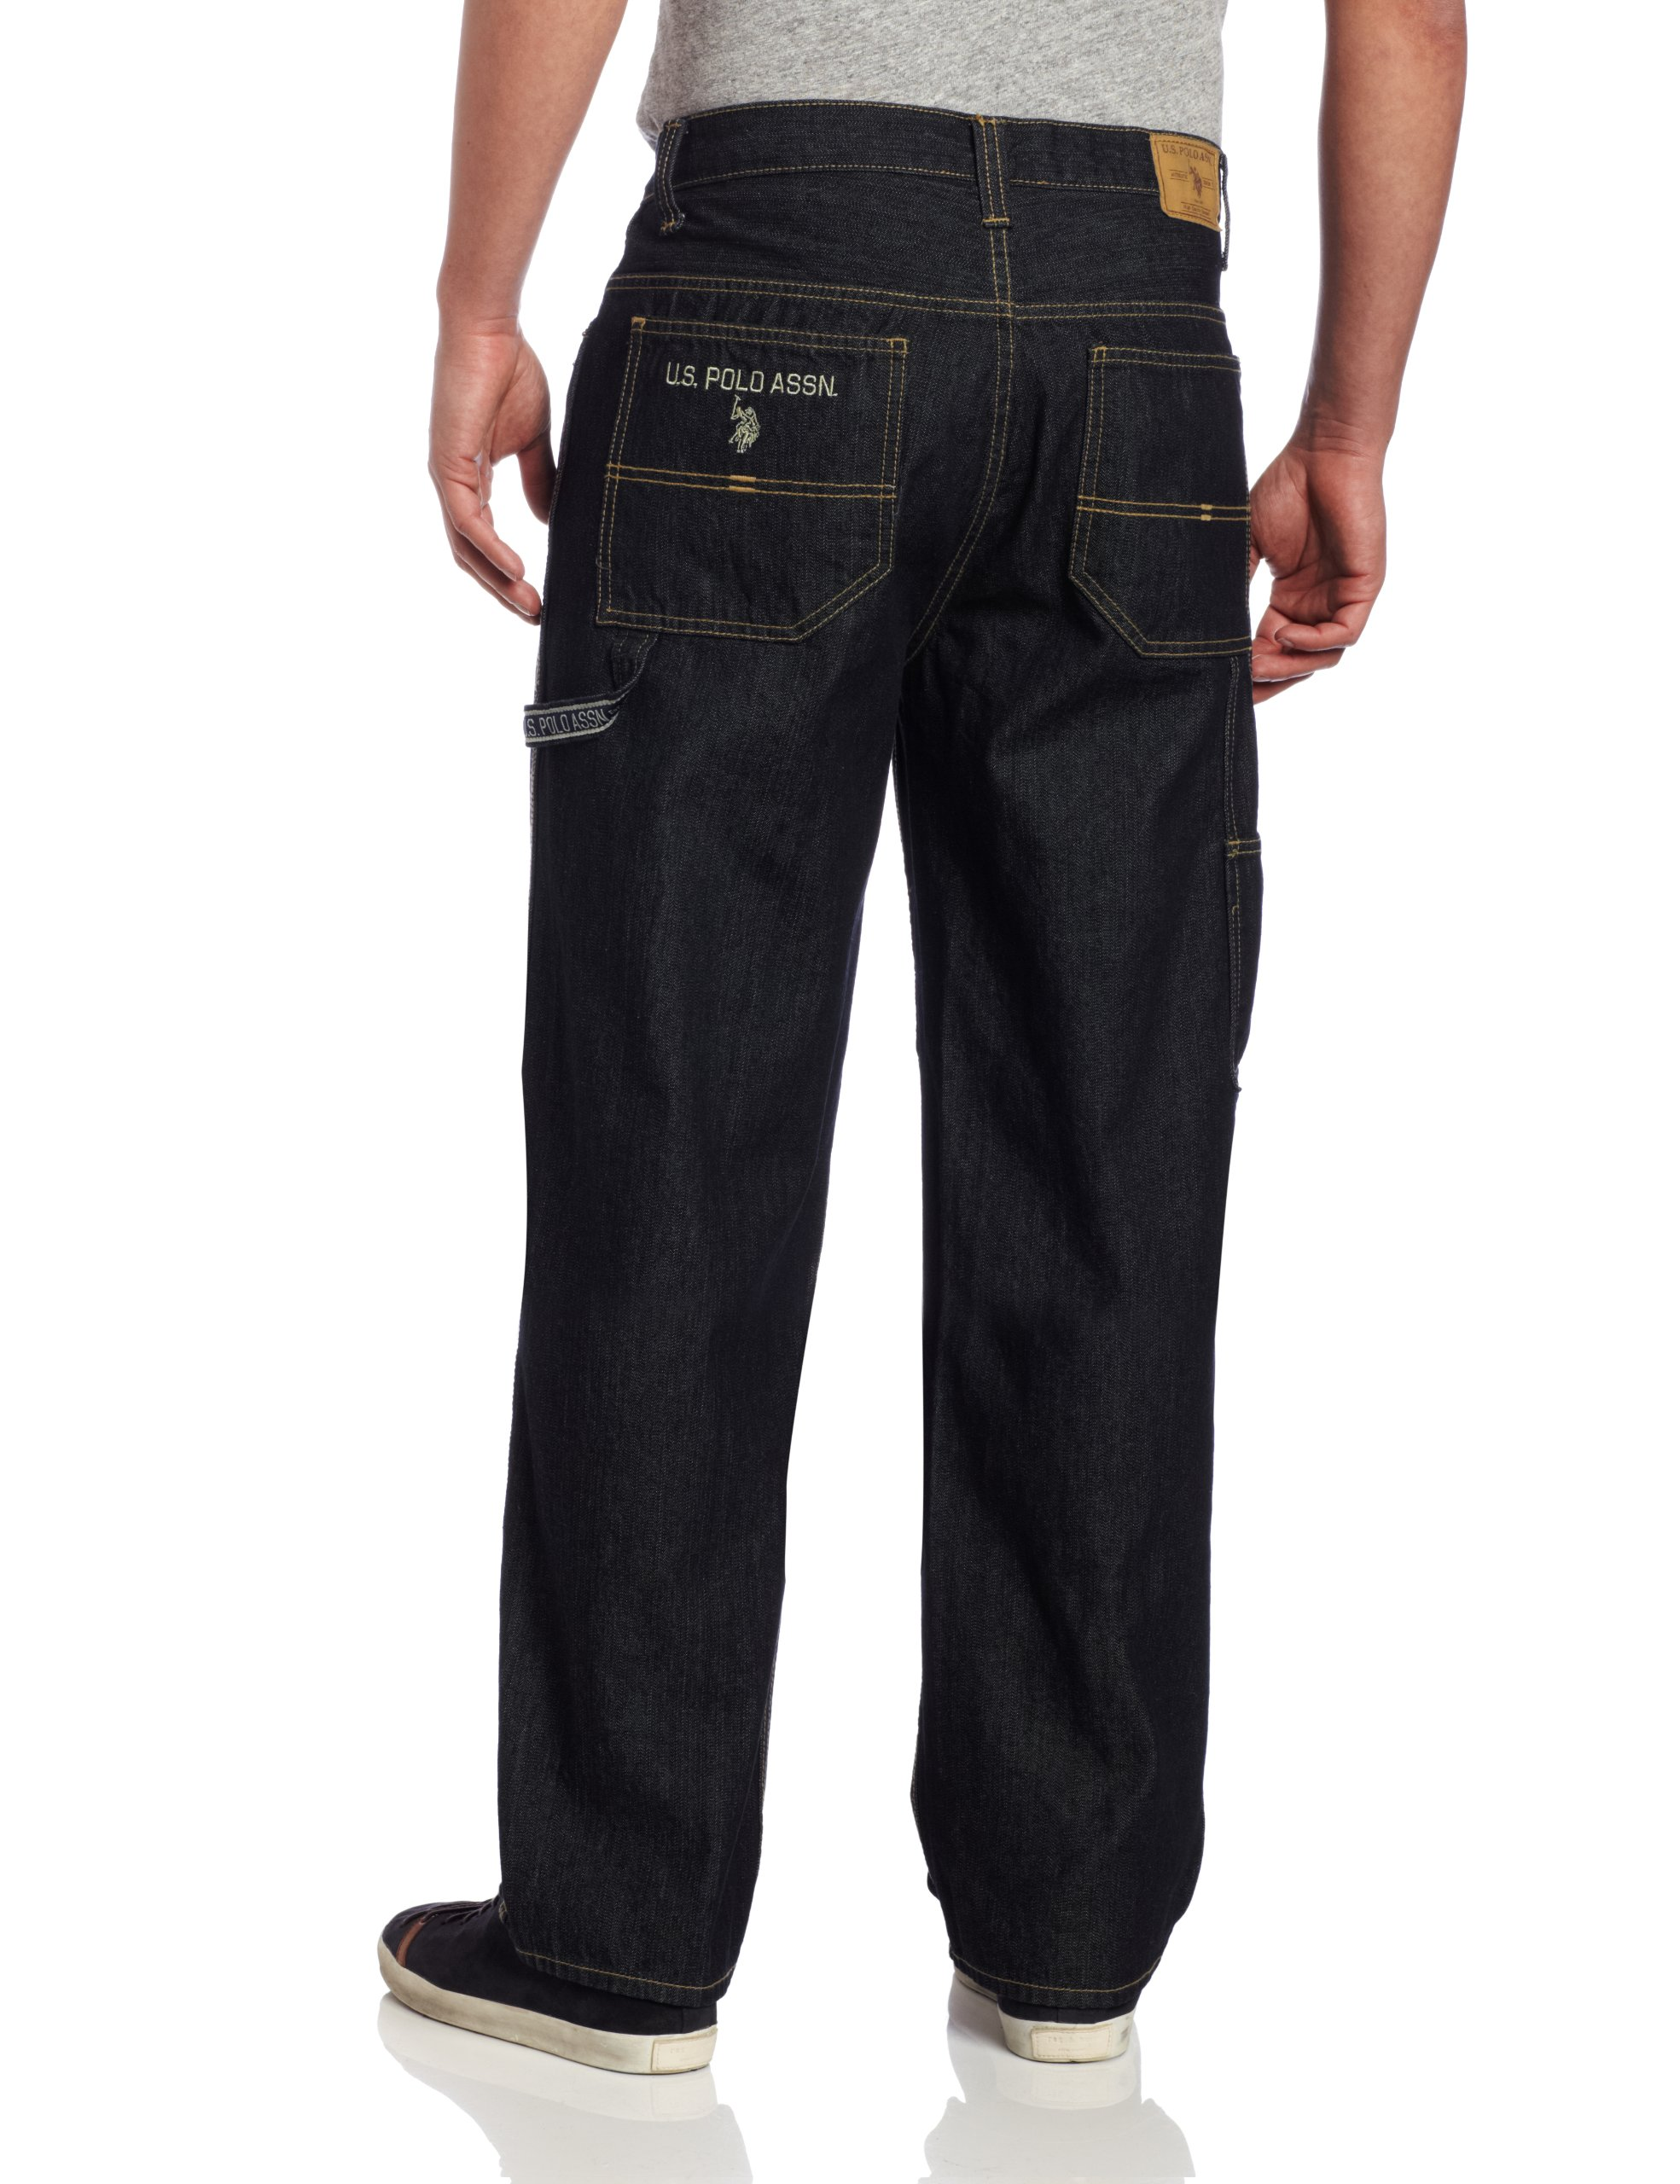 U.S. Polo Assn. Men's Carpenter Jean